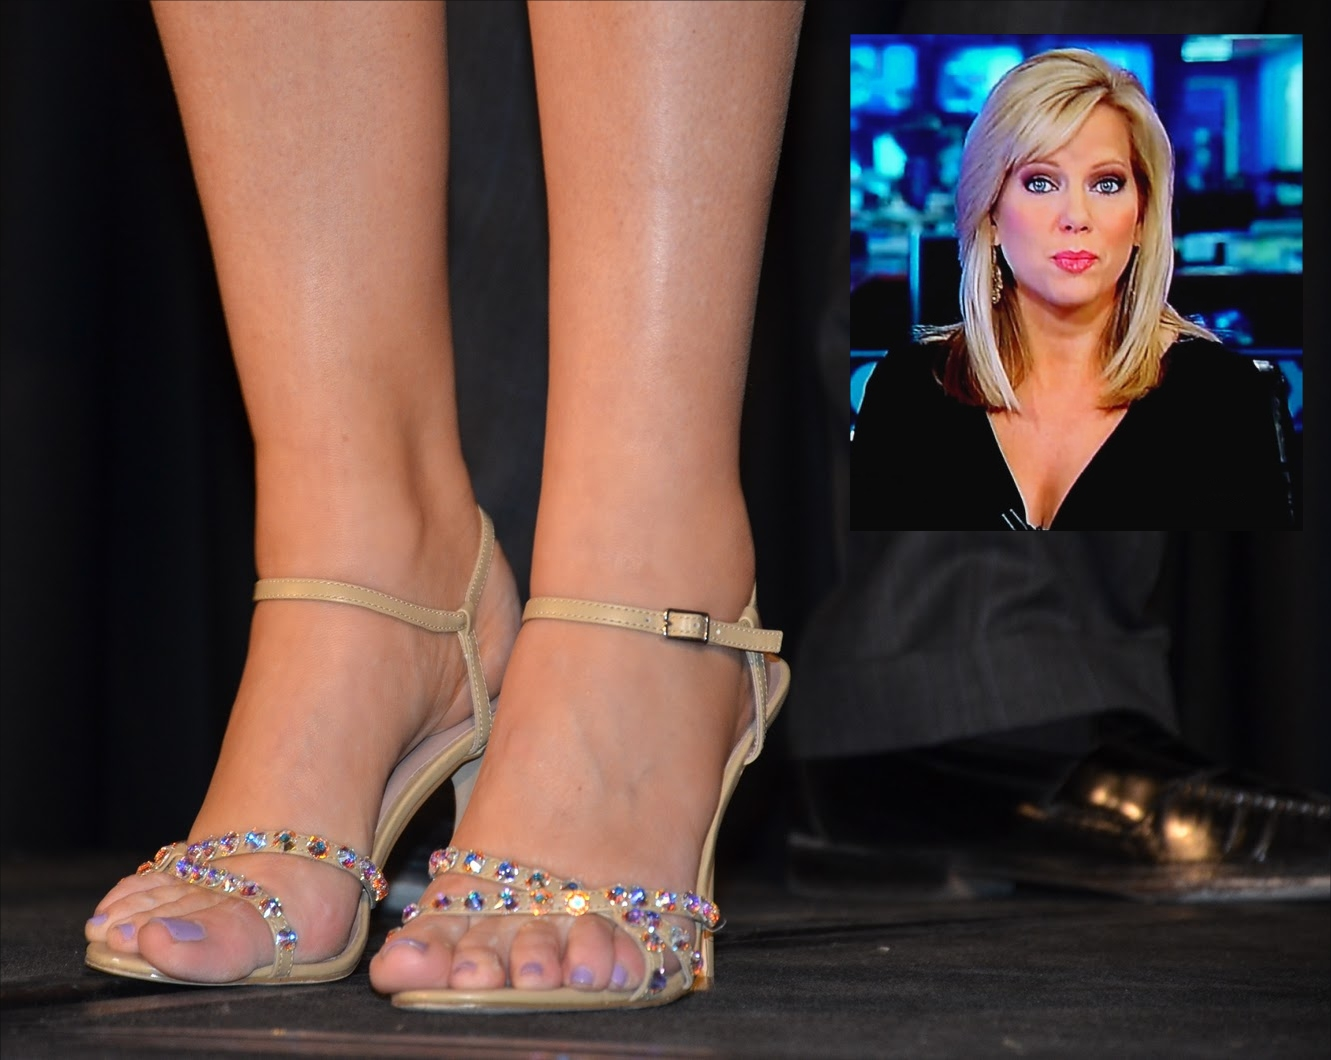 Shannon Bream Feet